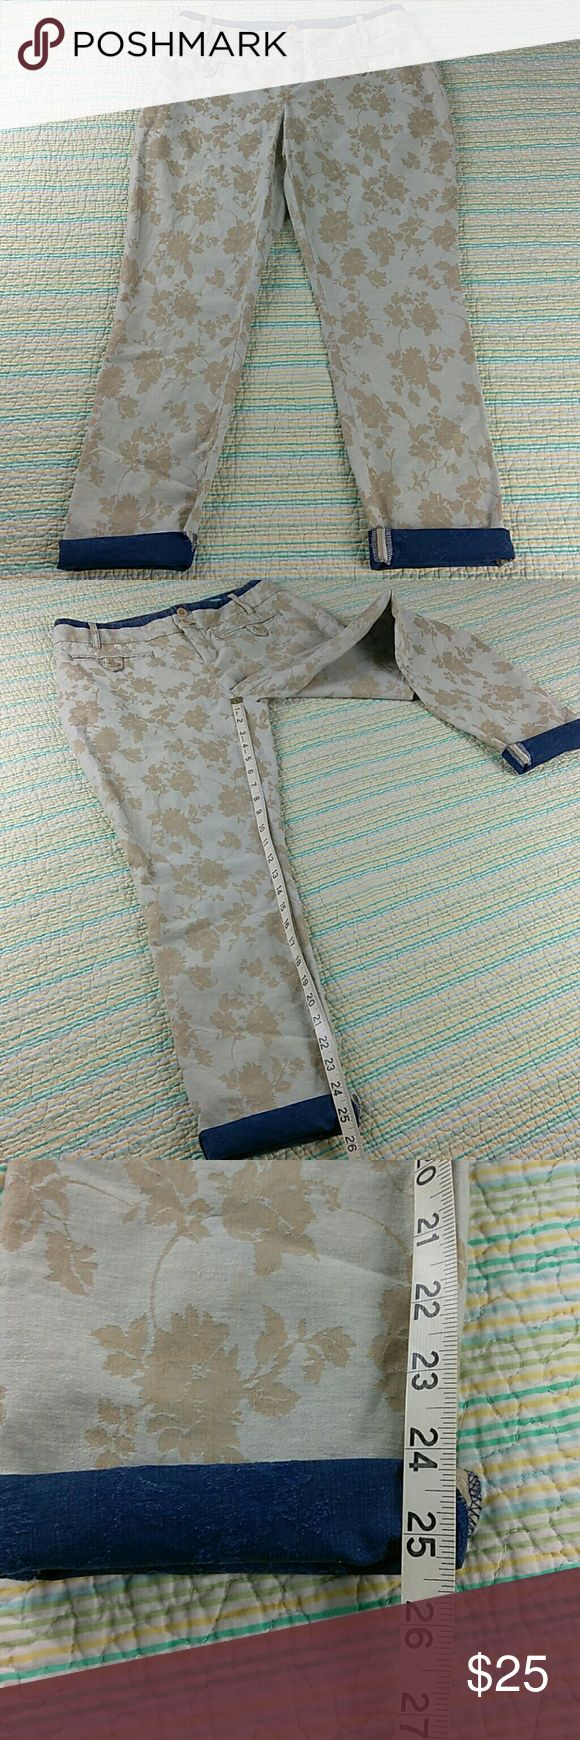 Anthropologie Cartonnier Charlie Trouser Sz 4 Pant Anthropologie Cartonnier Charlie Trouser Sz 4 Linen Natural Jacquard Ankle Pants Anthropologie Pants Ankle & Cropped